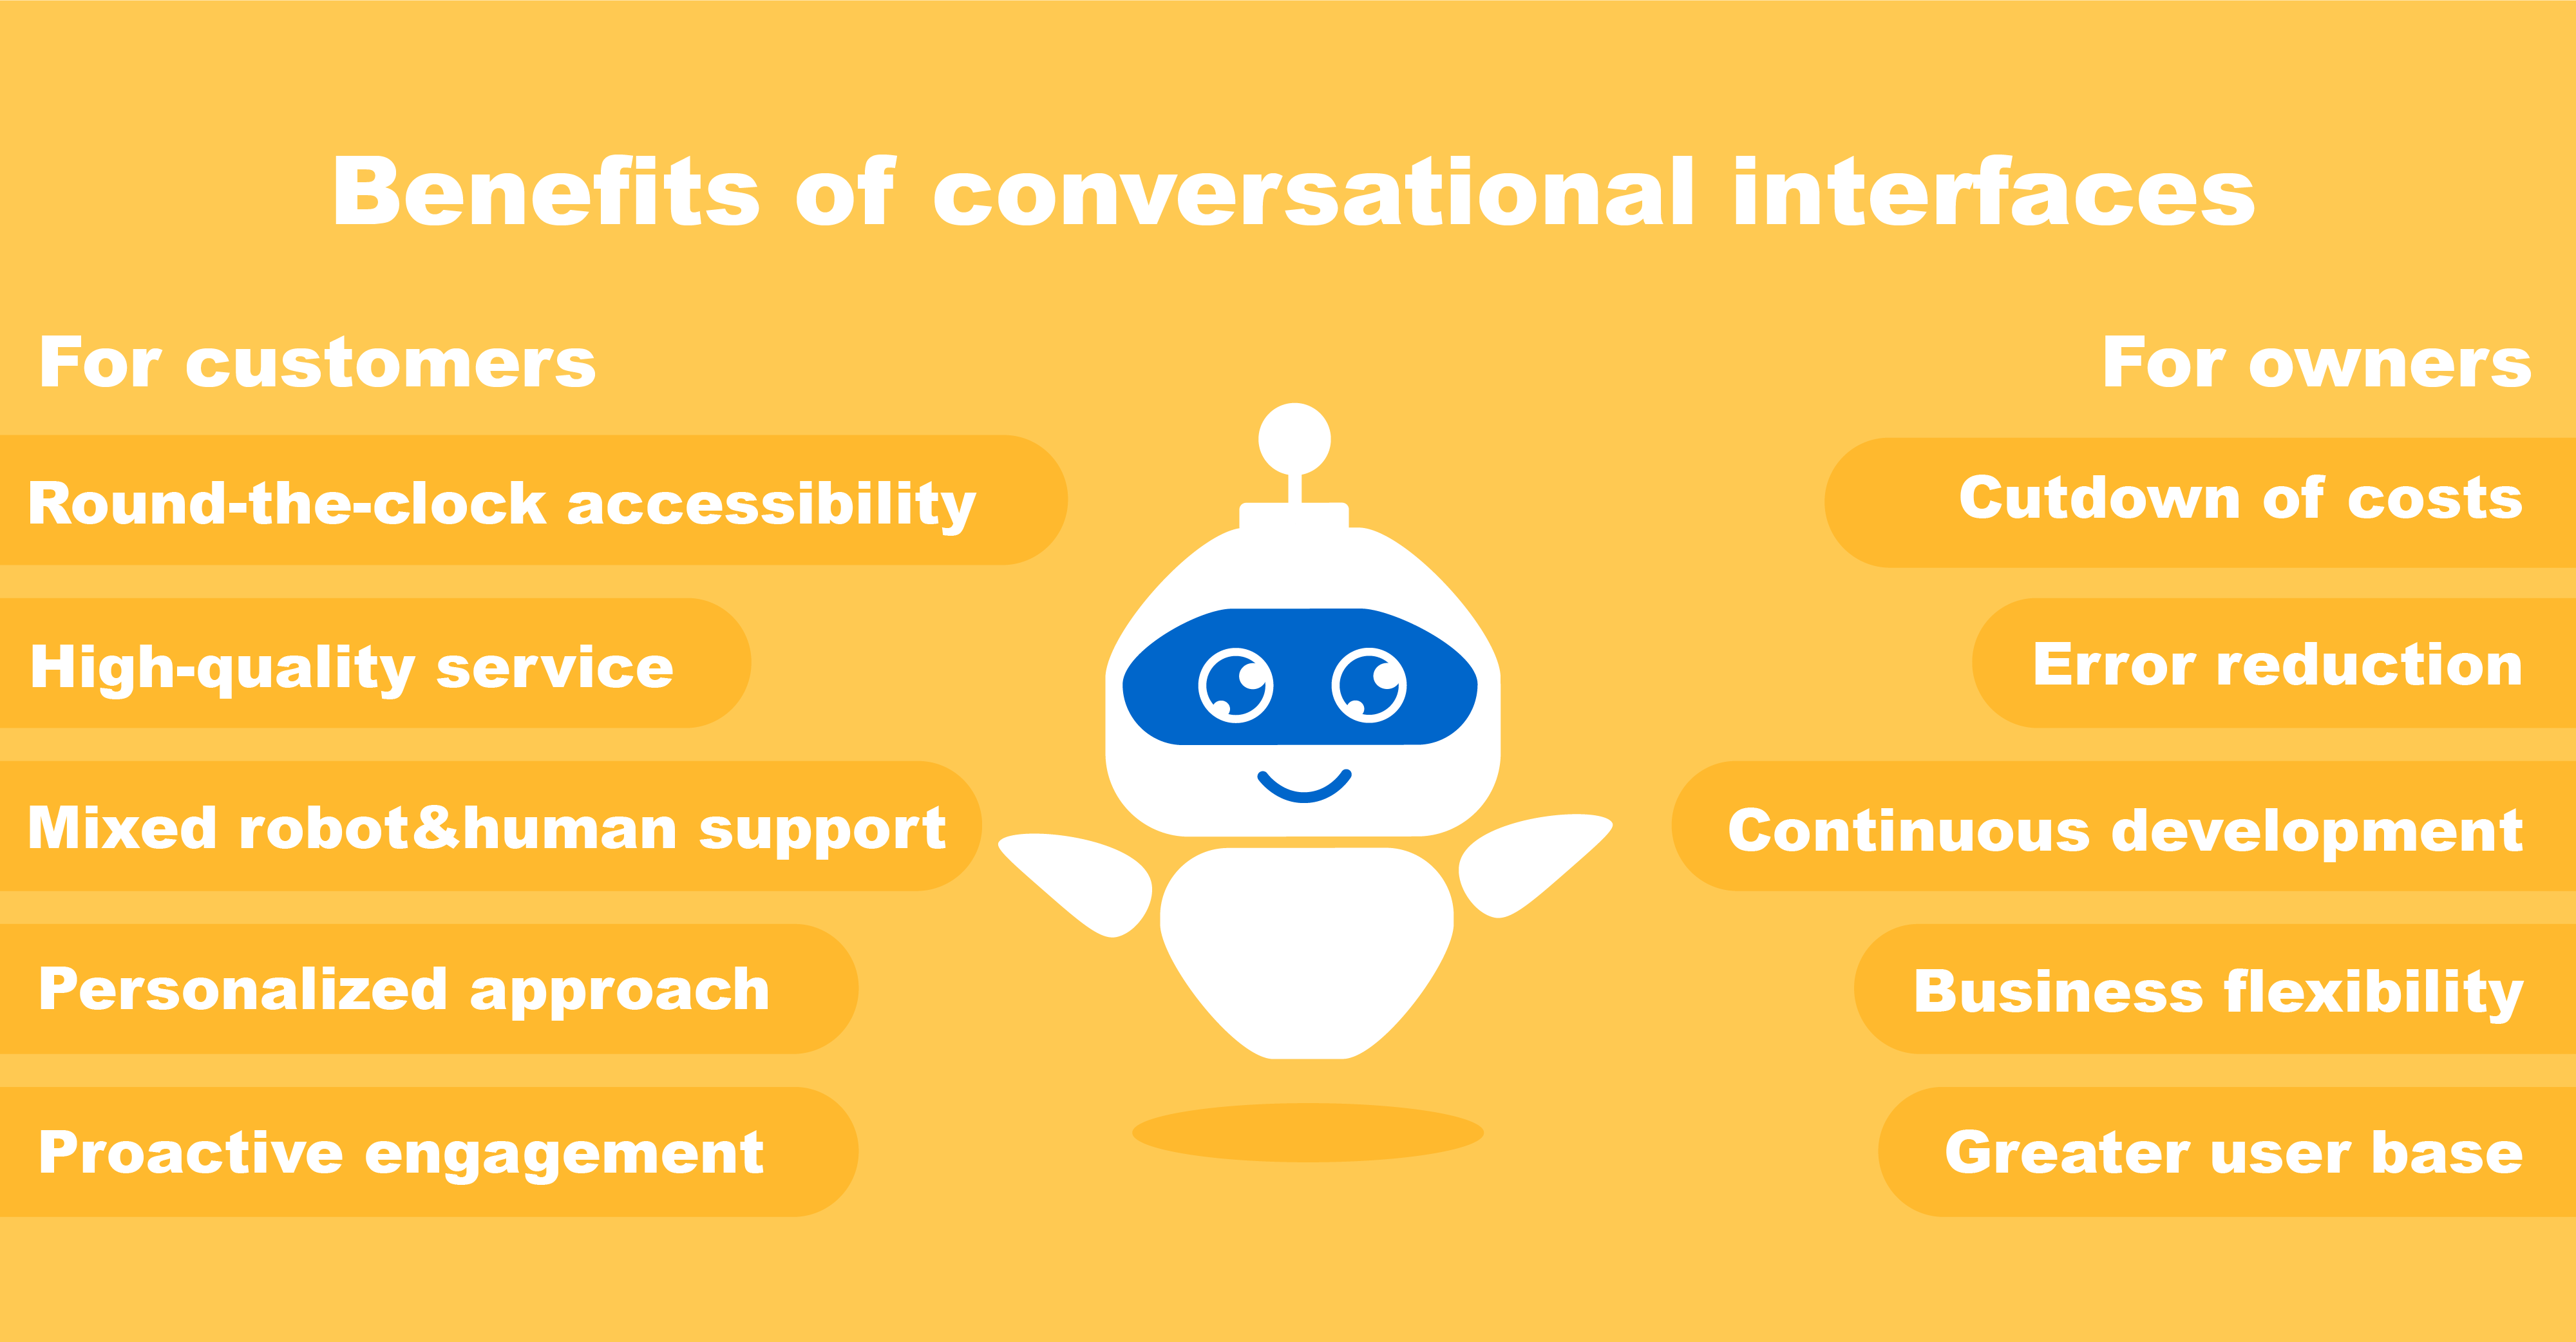 Benefits of conversational interfaces